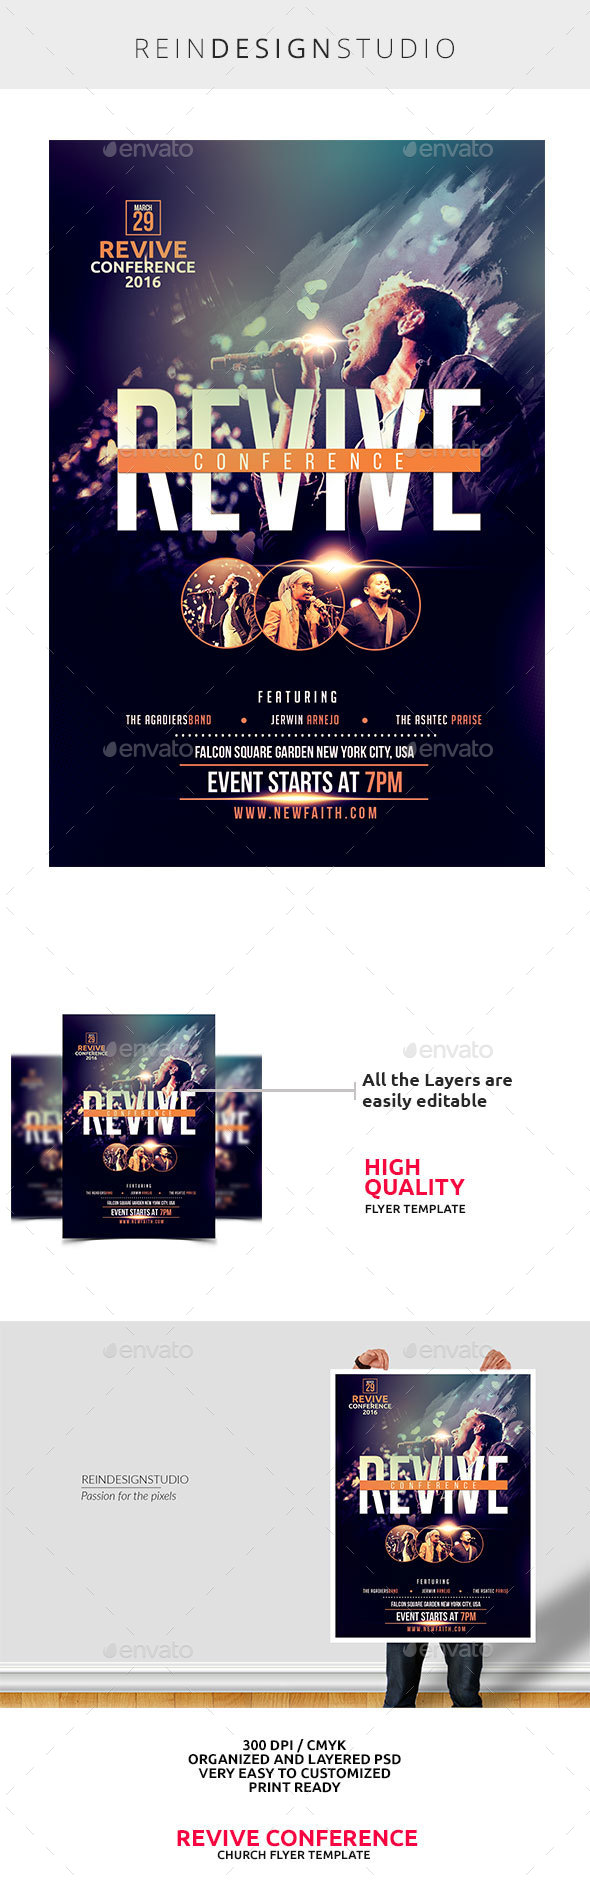 Revive Conference Church Flyer - Church Flyers